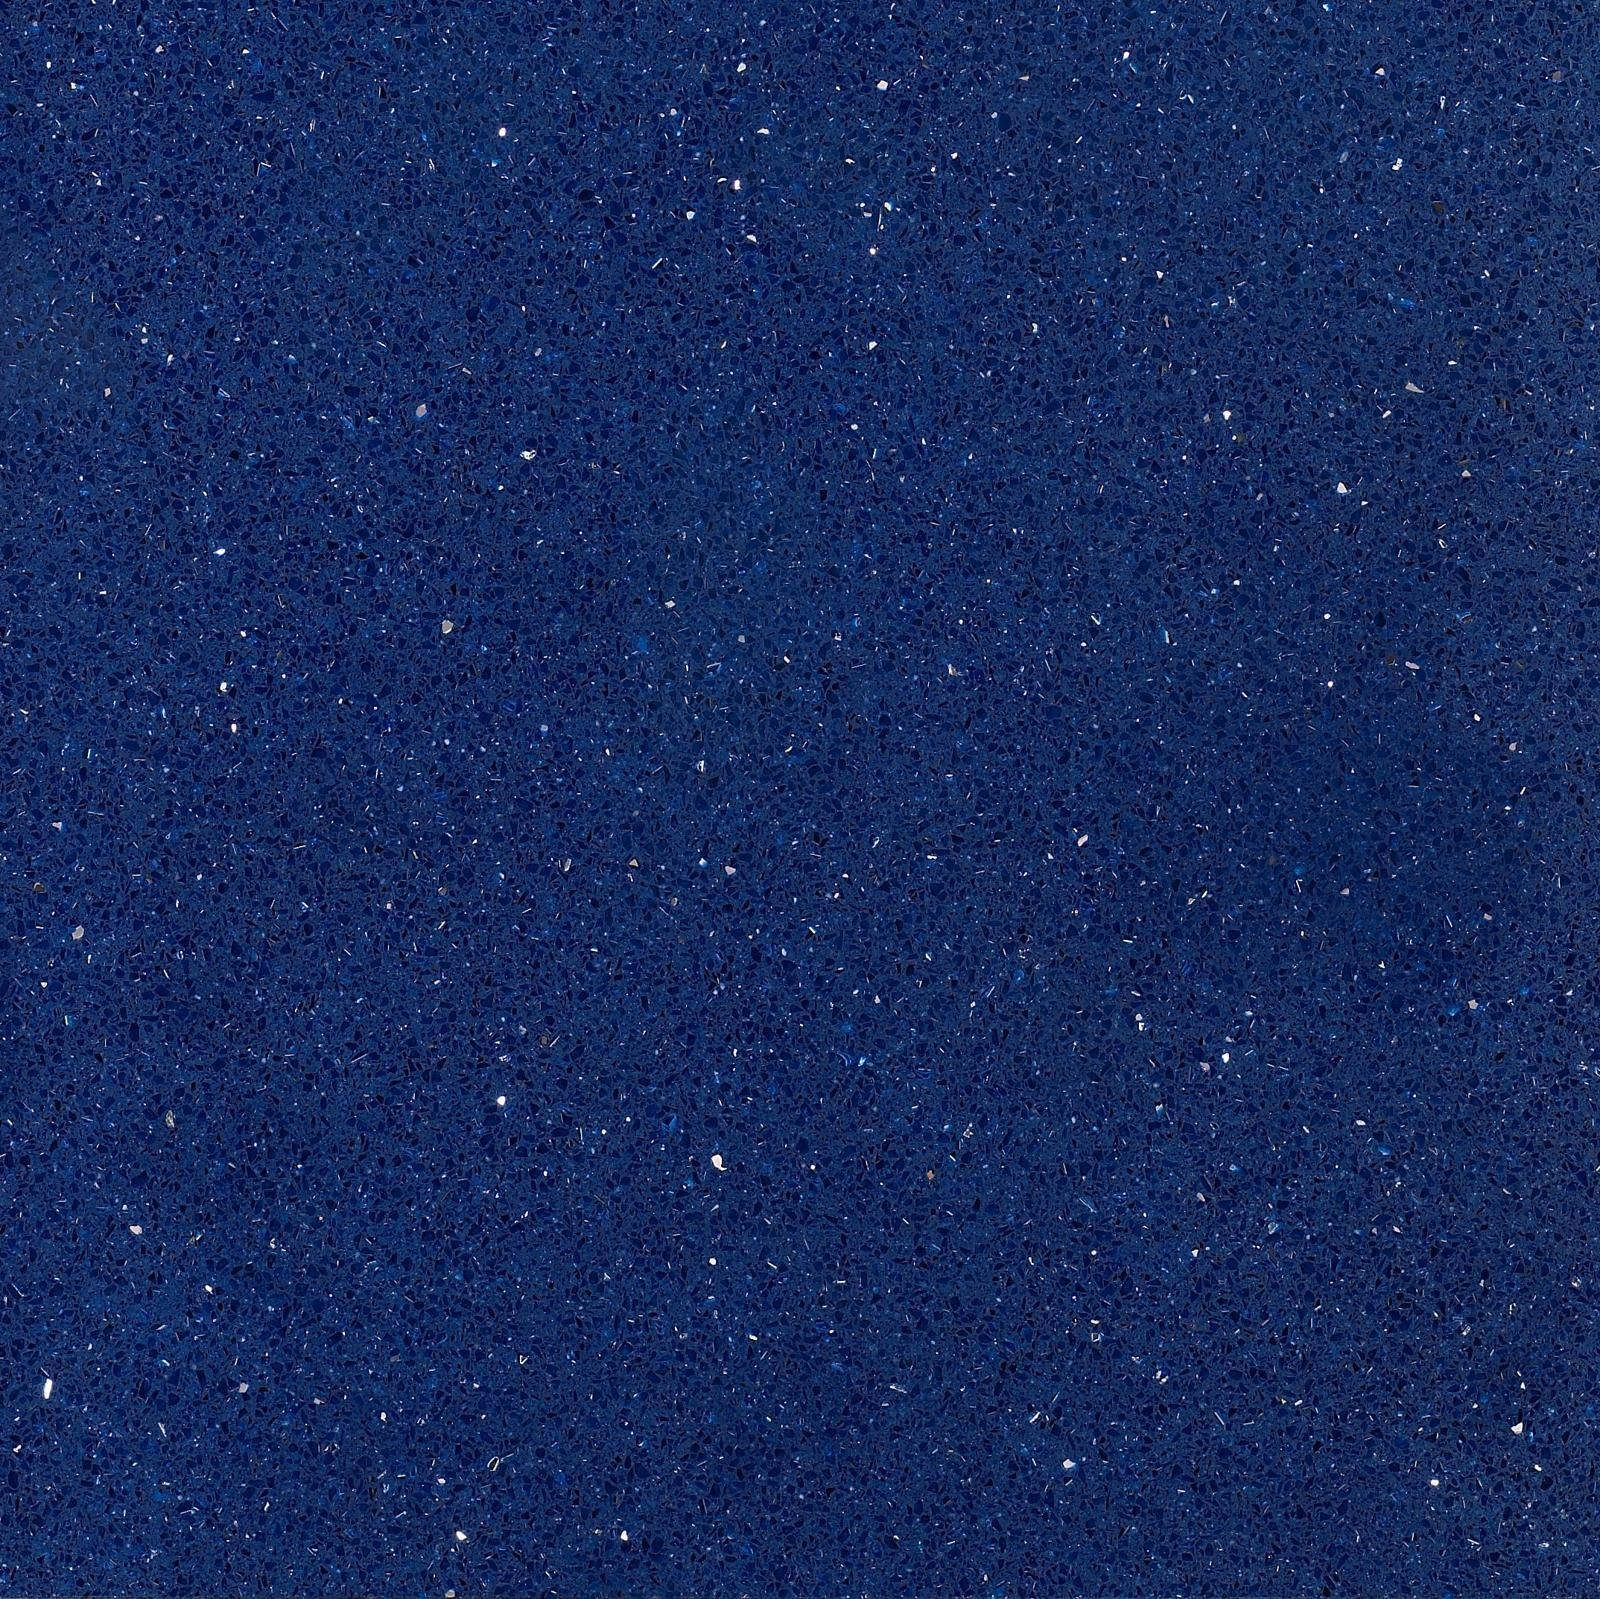 Starlight quartz blue wall or floor tile 30 x 30 cm tiles starlight quartz blue wall or floor tile 30 x 30 cm dailygadgetfo Gallery